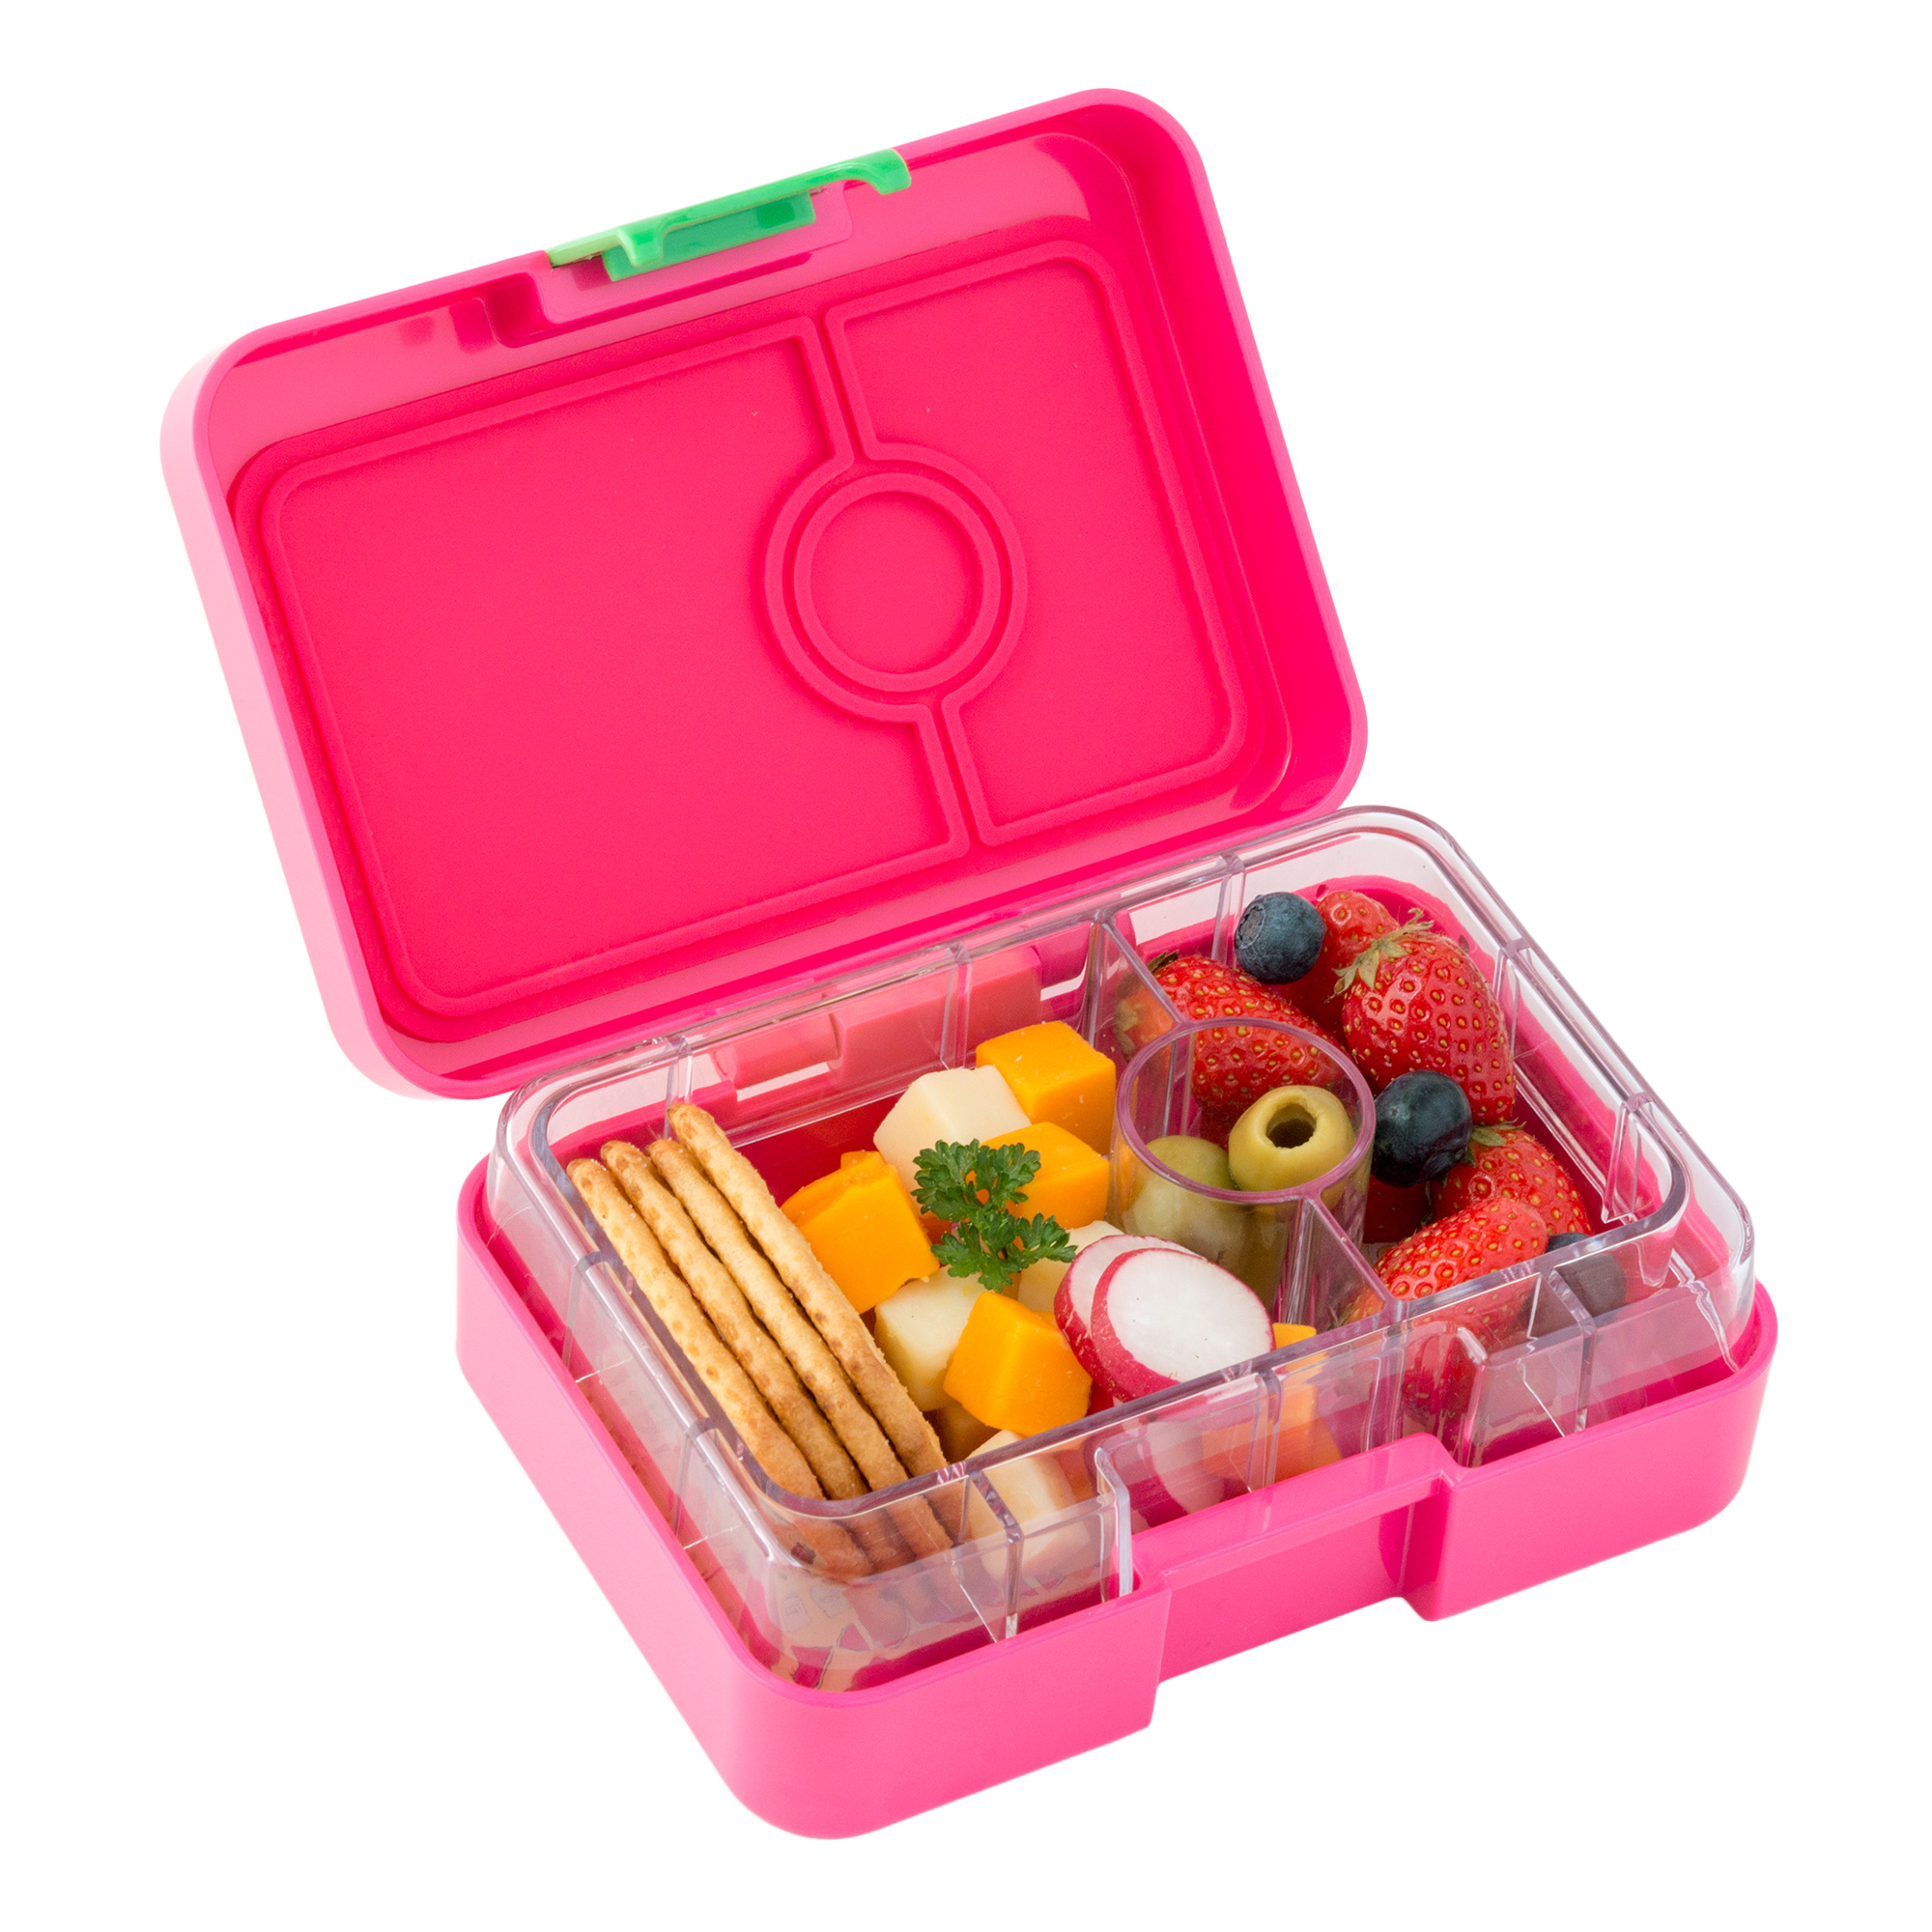 Yumbox MiniSnack 3-sections Cherie pink / Kittycat tray-2